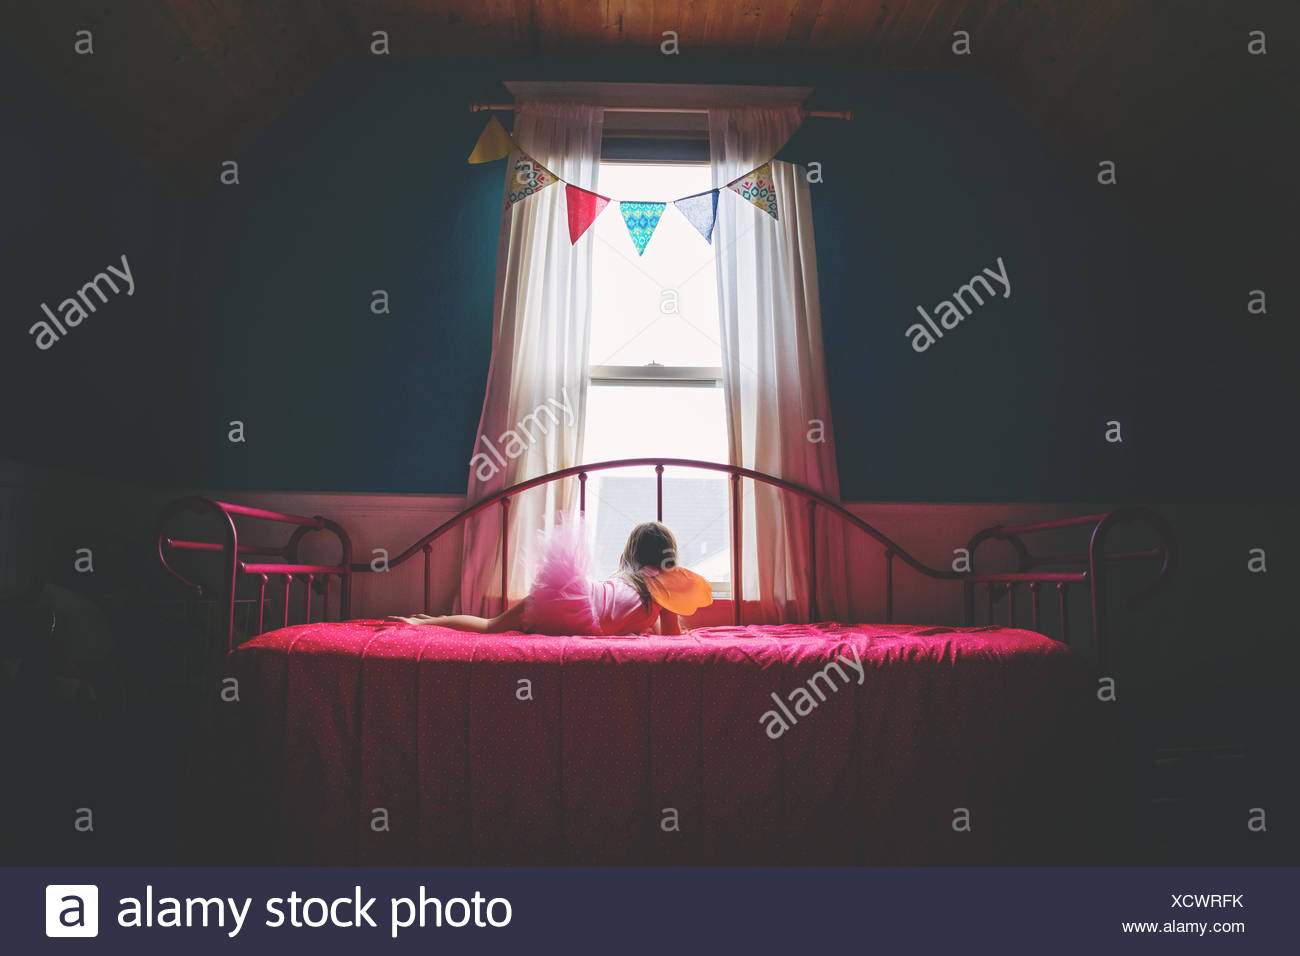 Girl lying on bed looking out of window - Stock Image